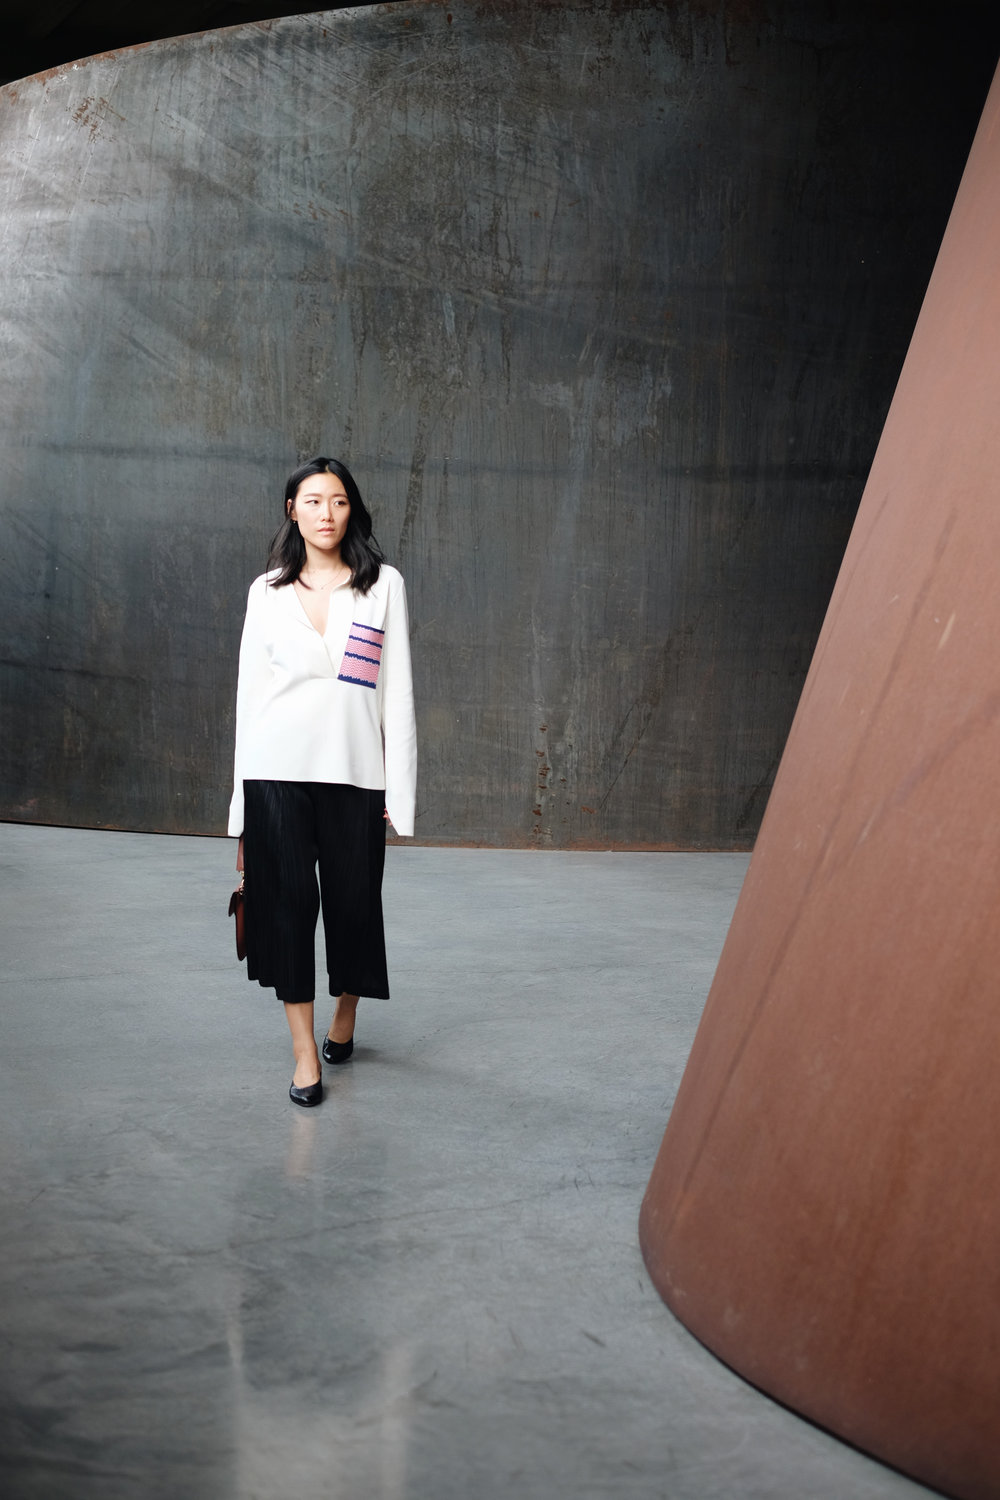 CÉLINE Top / ISSEY MIYAKE Pants / J.W. ANDERSON Bag / MARI GIUDICELLI Shoes (More here)